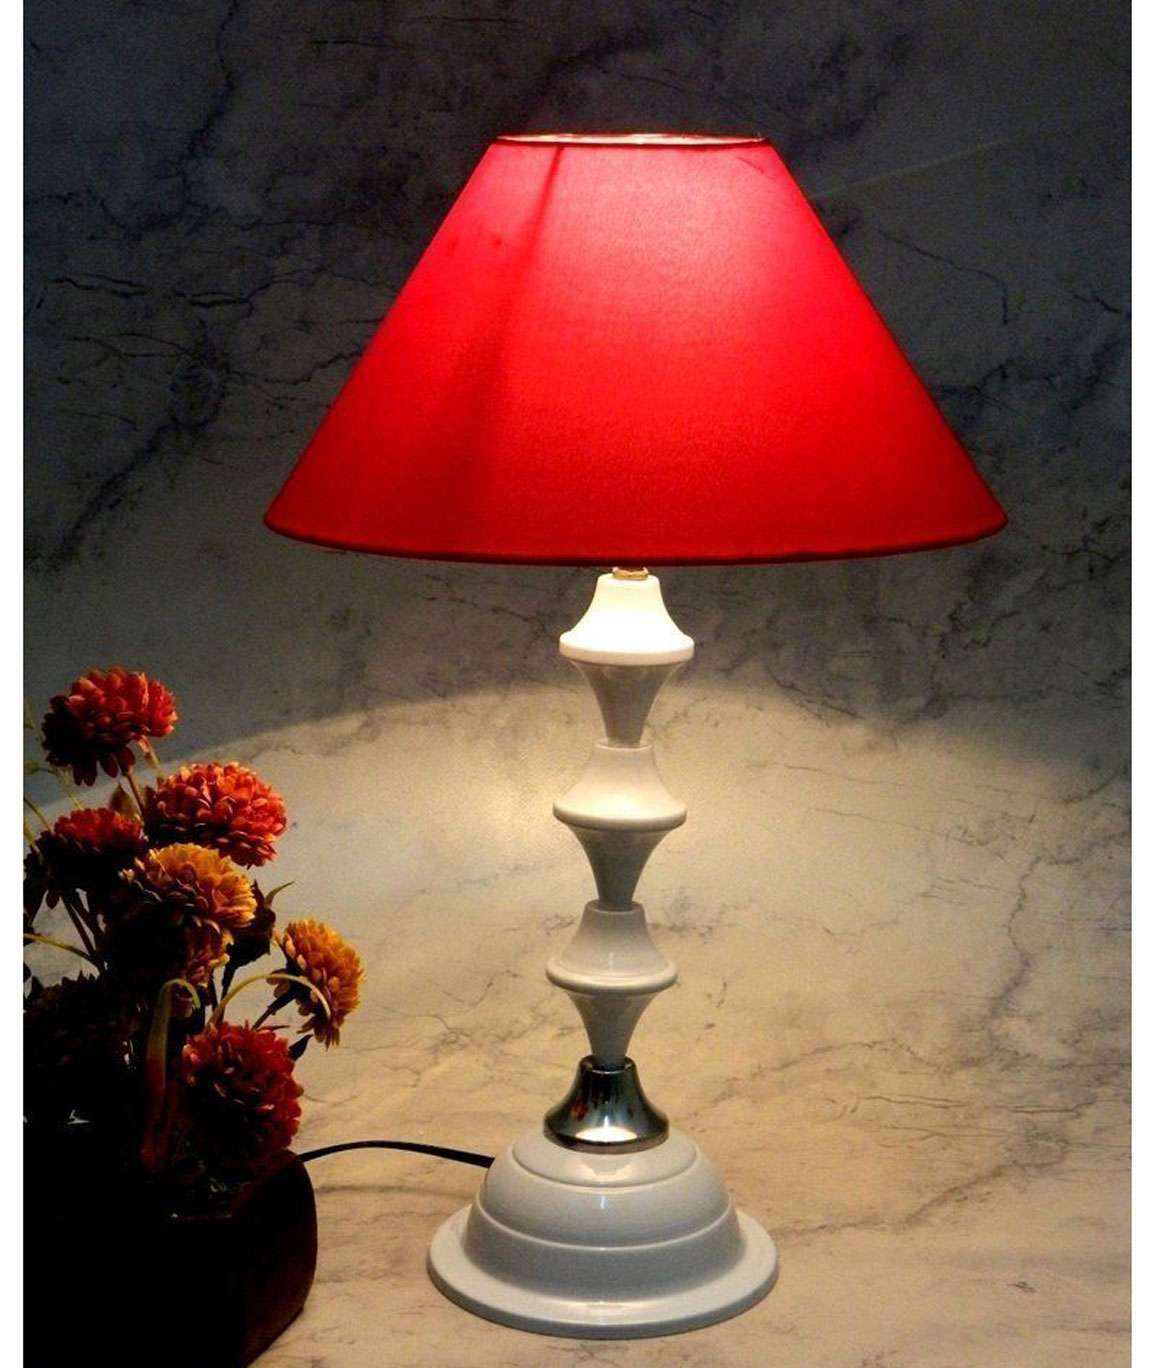 RDC White Silver Table Lamp with 10 Inches Round Plain Red Lamp Shade